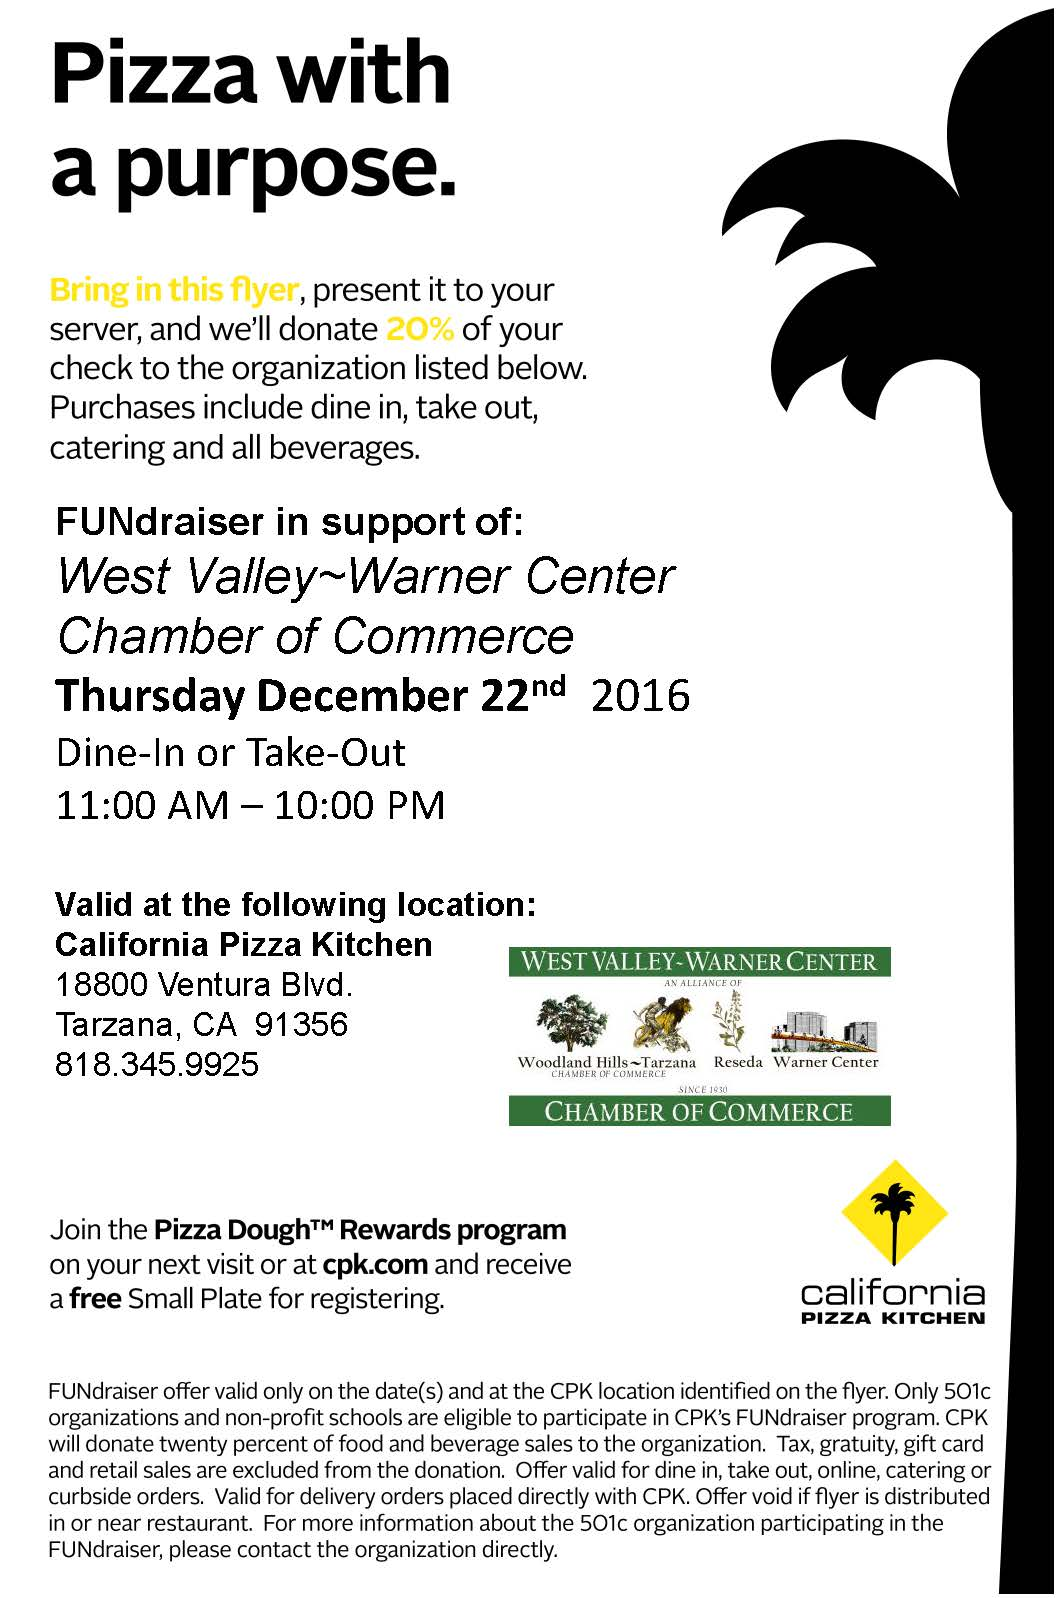 California Pizza Kitchen Fundraiser In Support Of West Valley Warner Center Chamber Of Commerce